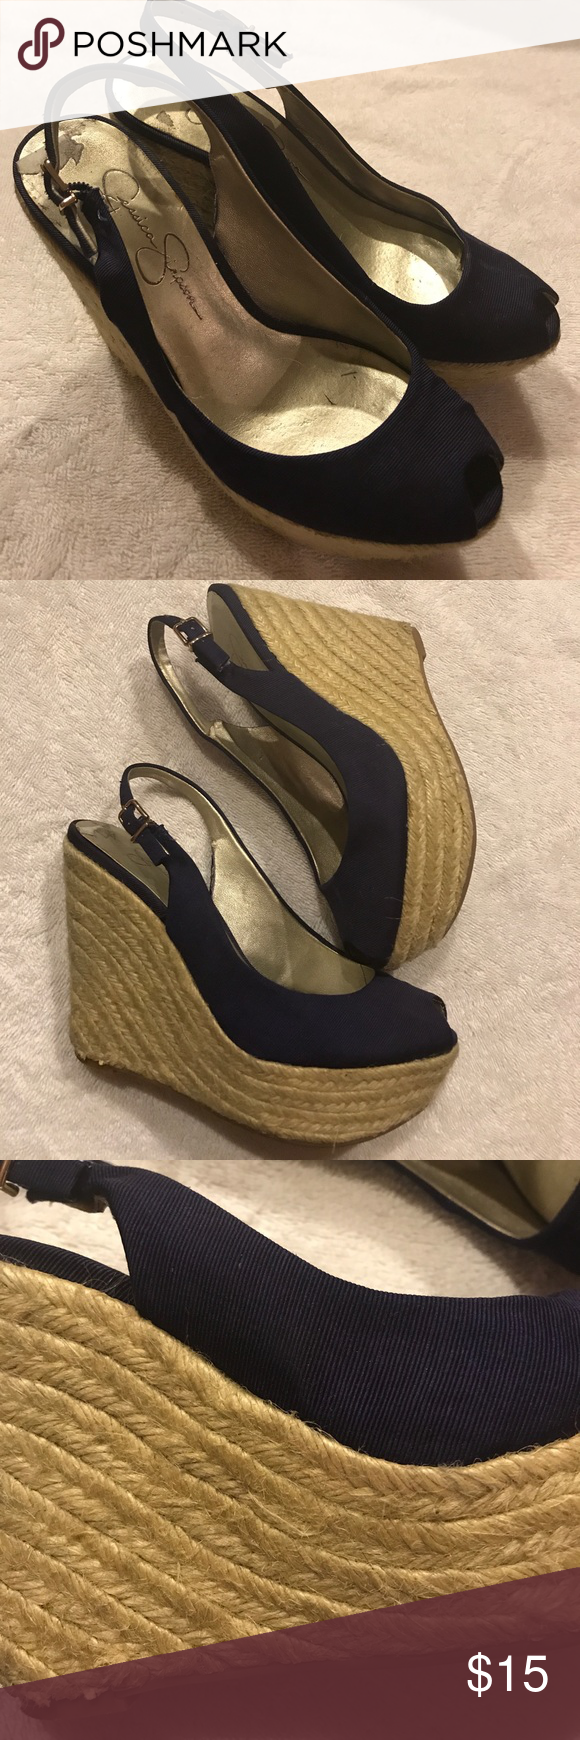 Jessica Simpson Beach Wedge Heels size 5 Worn a few times! Great condition! Size 5. Look amazing with skirts and skinny jeans Jessica Simpson Shoes Wedges